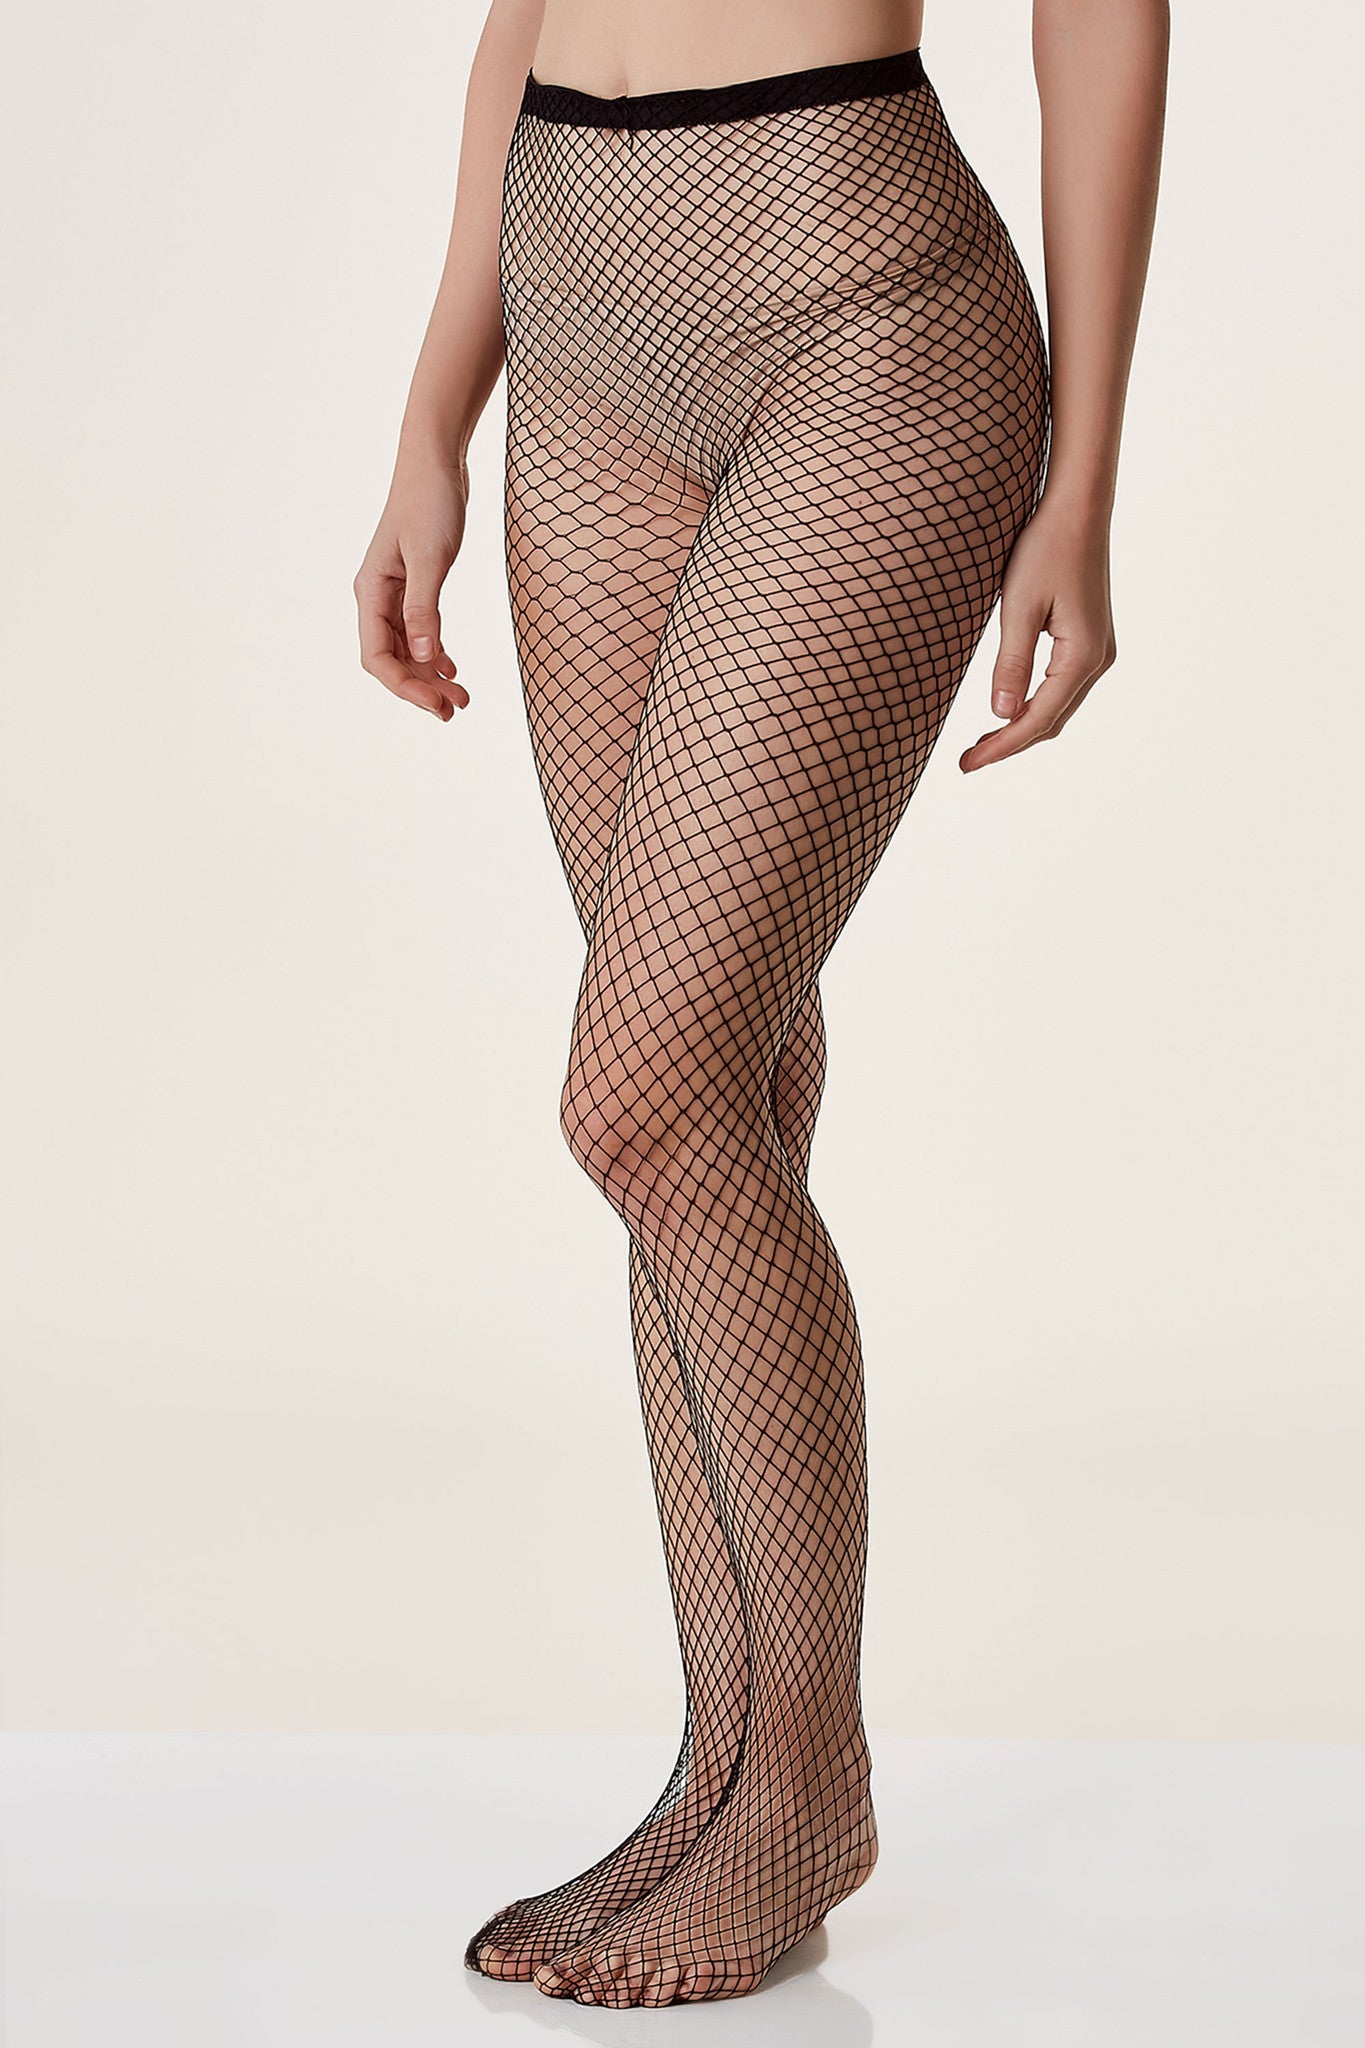 Basic full length fishnet stockings with comfortable stretch.